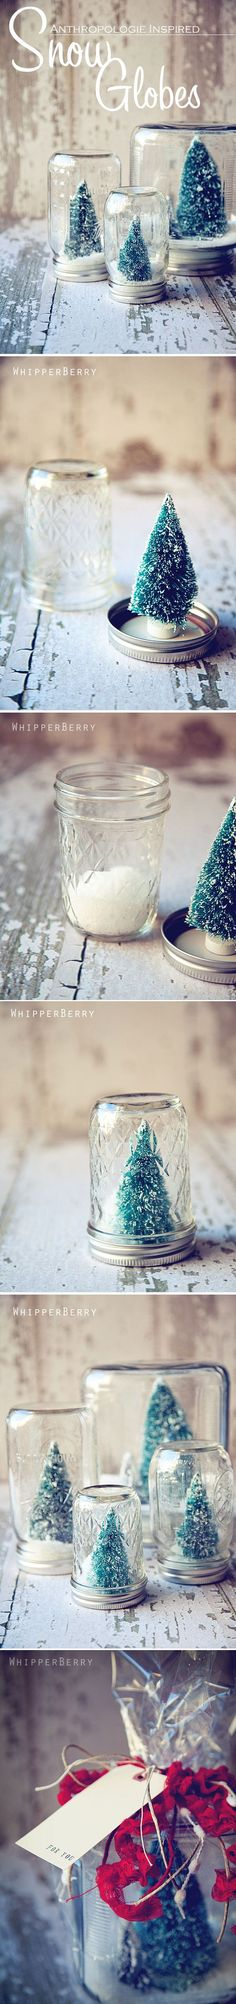 Adorable home-made snow globes make for great holiday gifts.